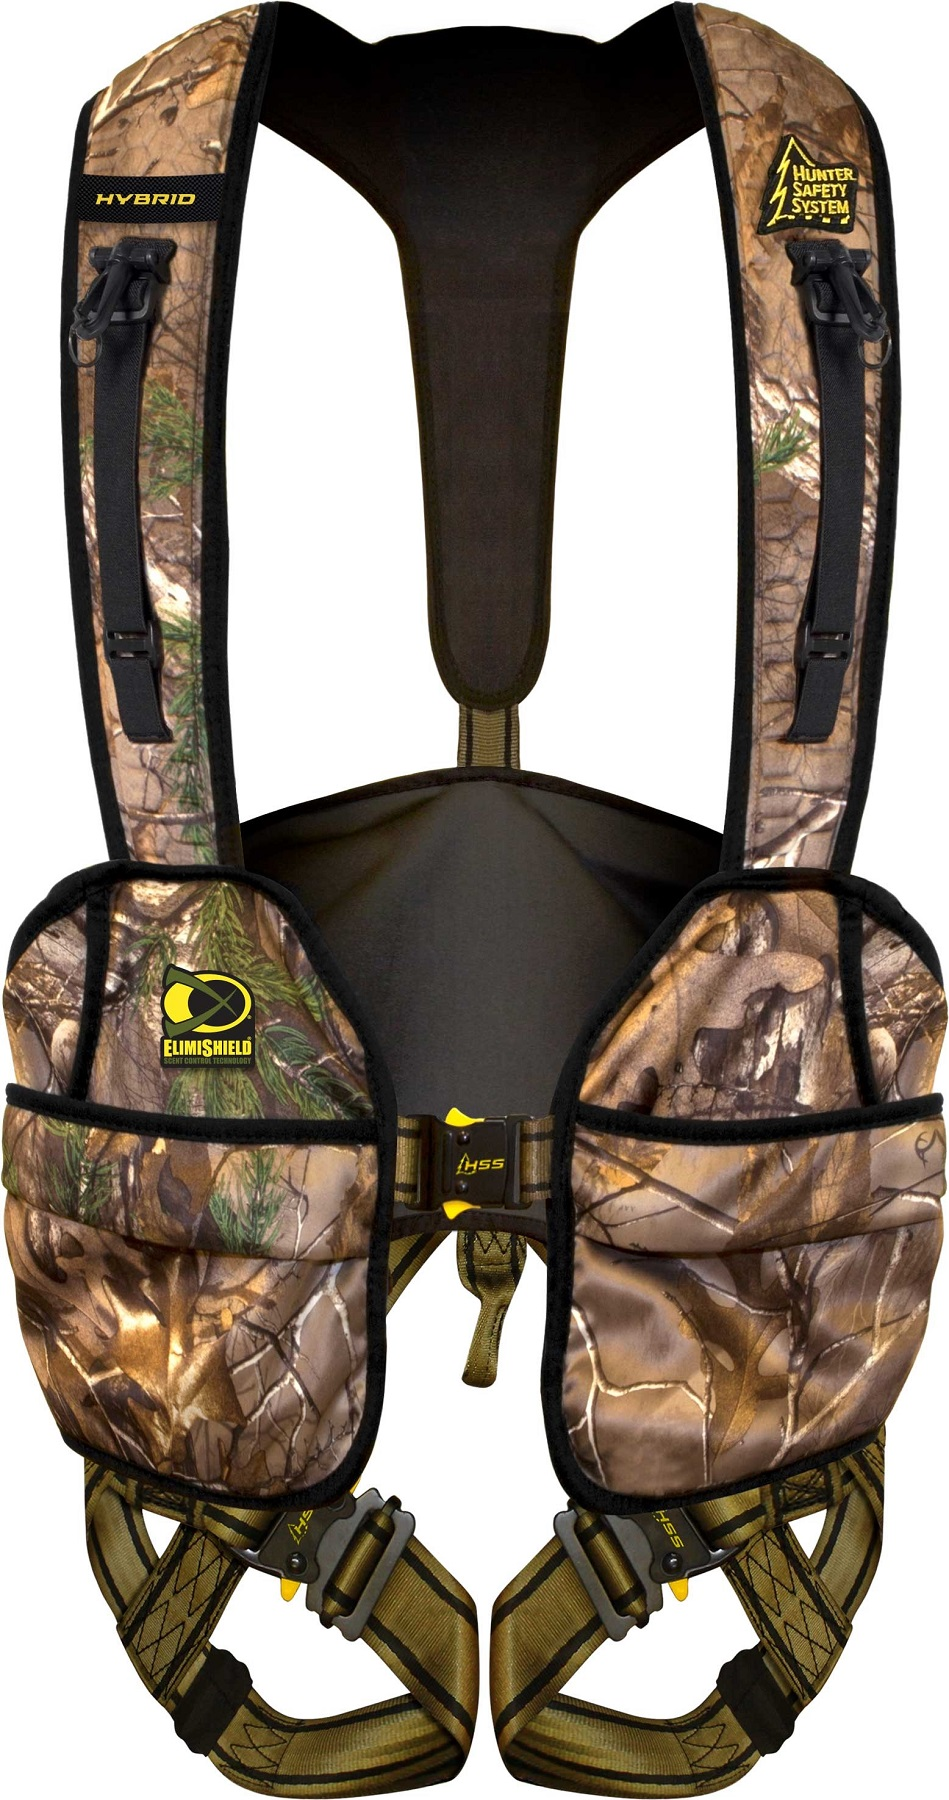 Hss Hybrid Flex Safety Harness In Realtree Xtra Realtree